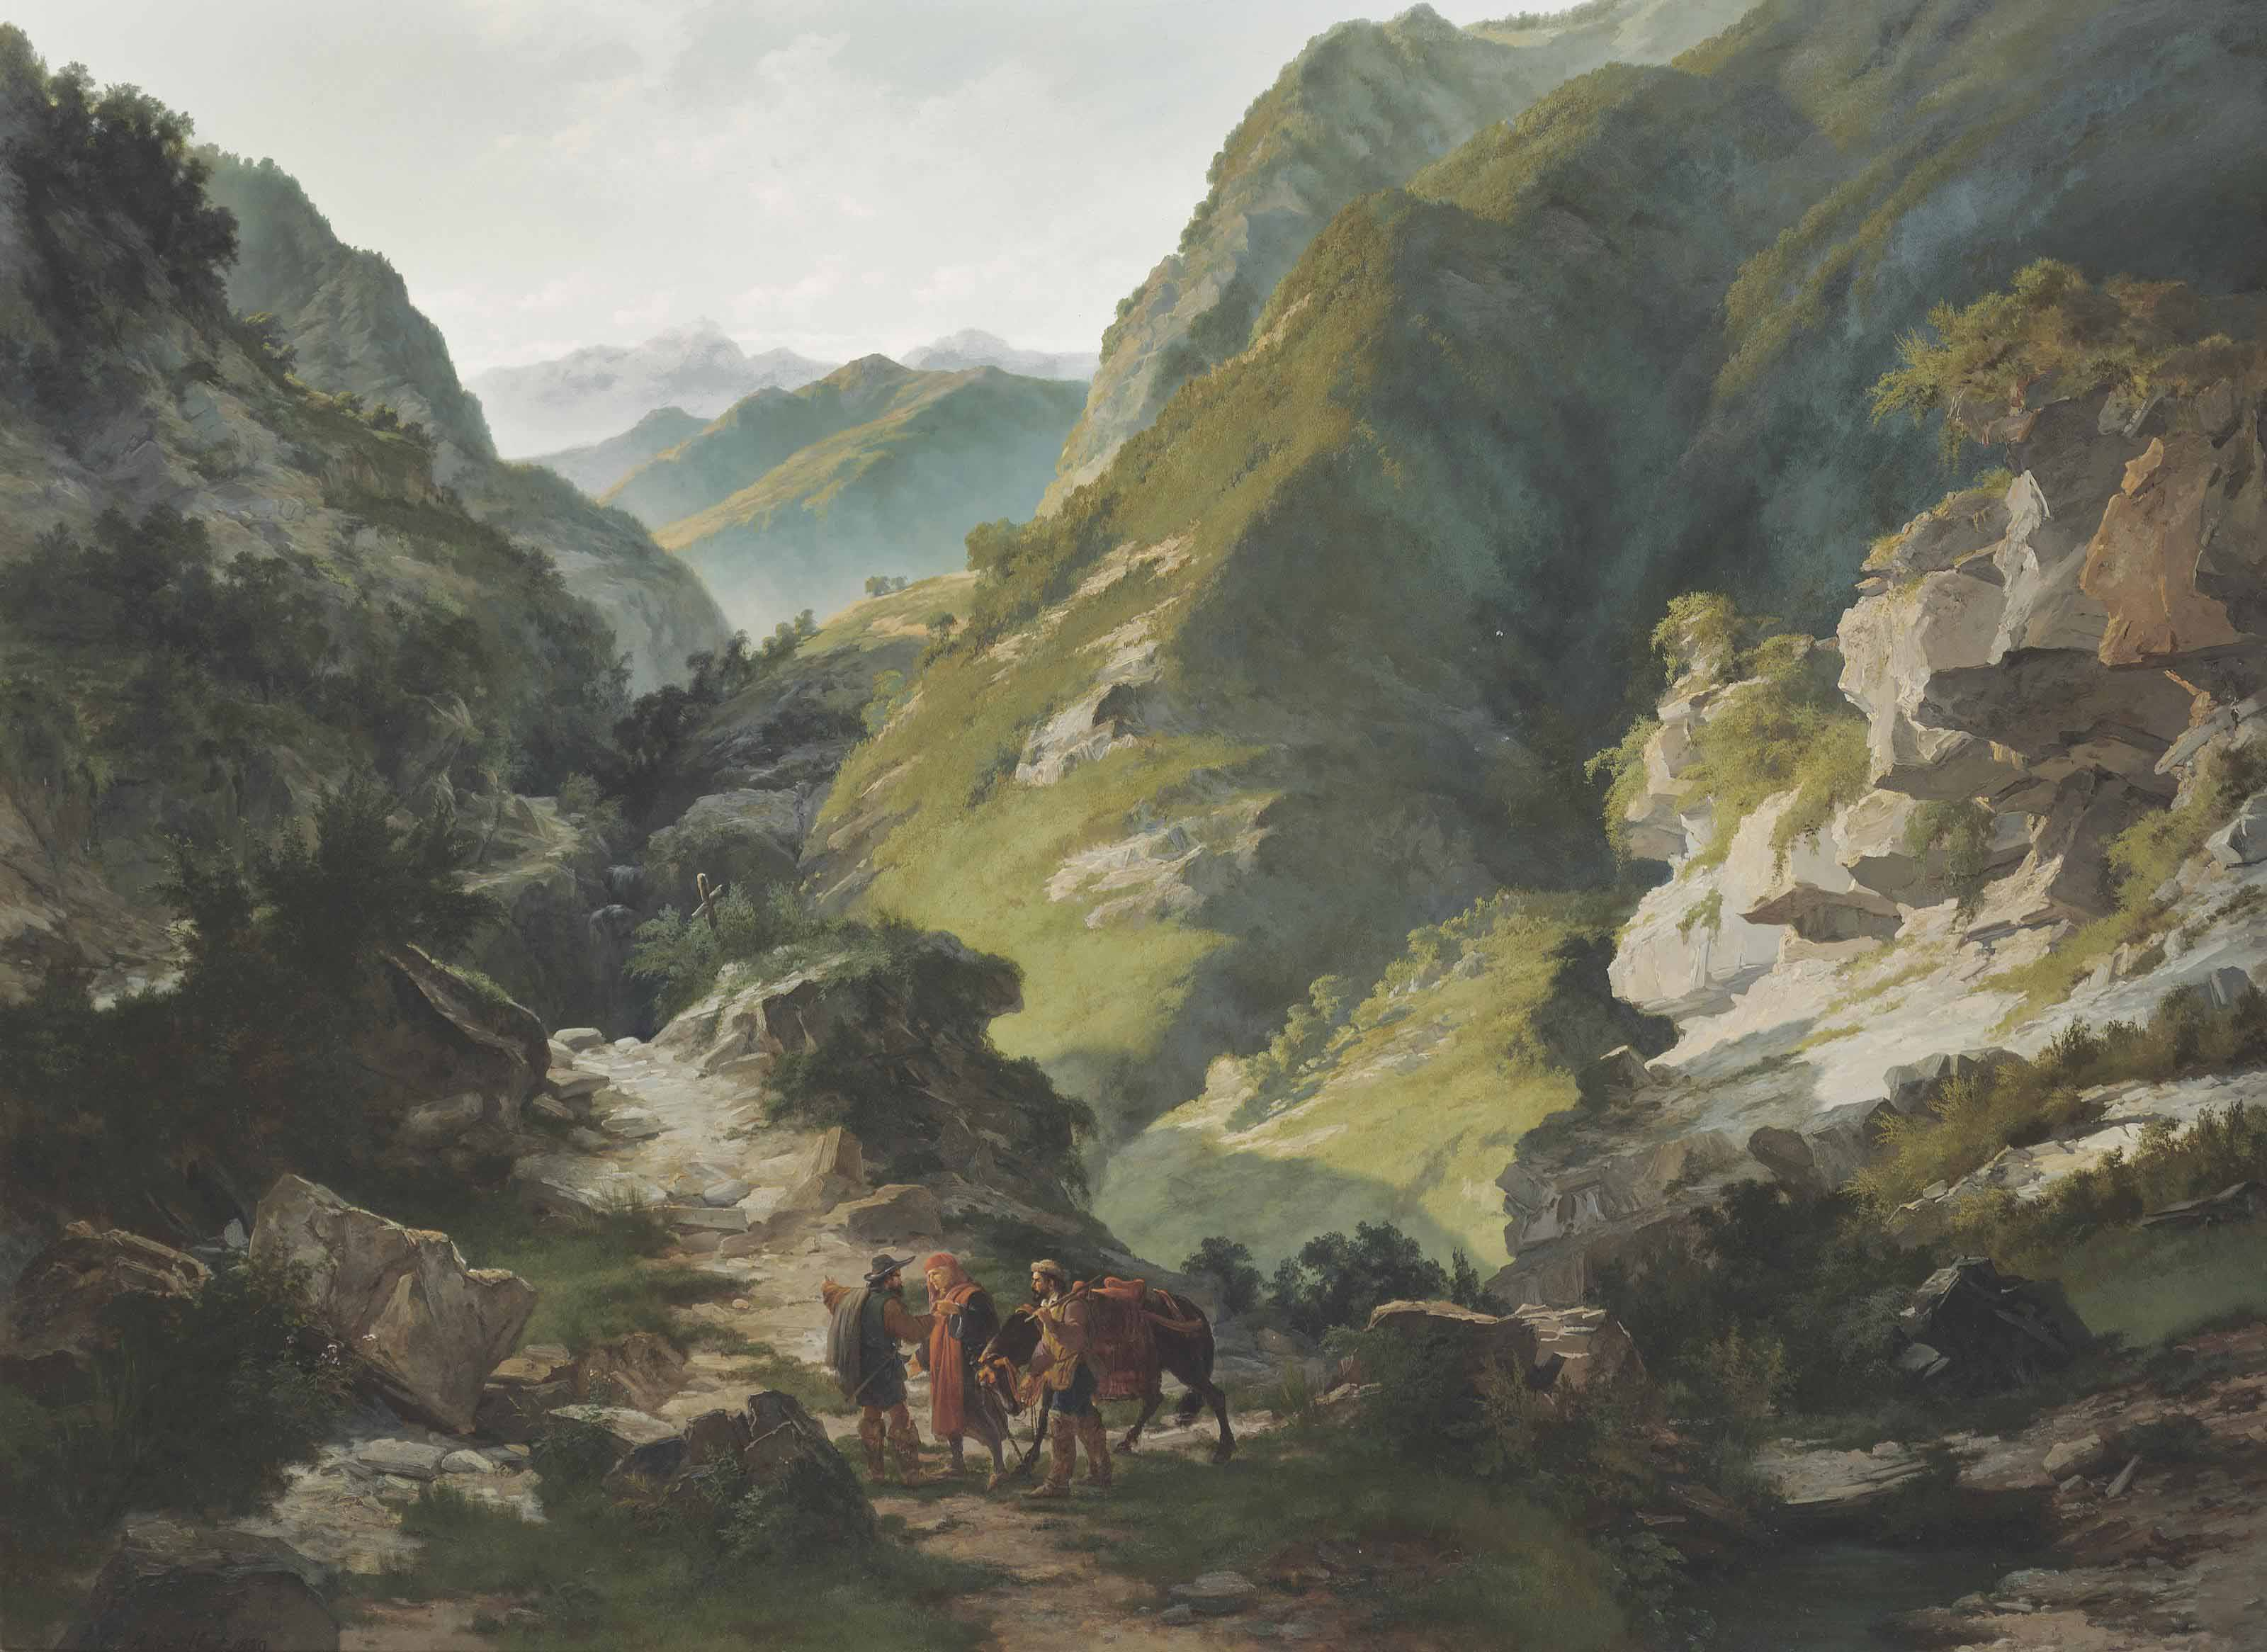 Travellers in the mountains